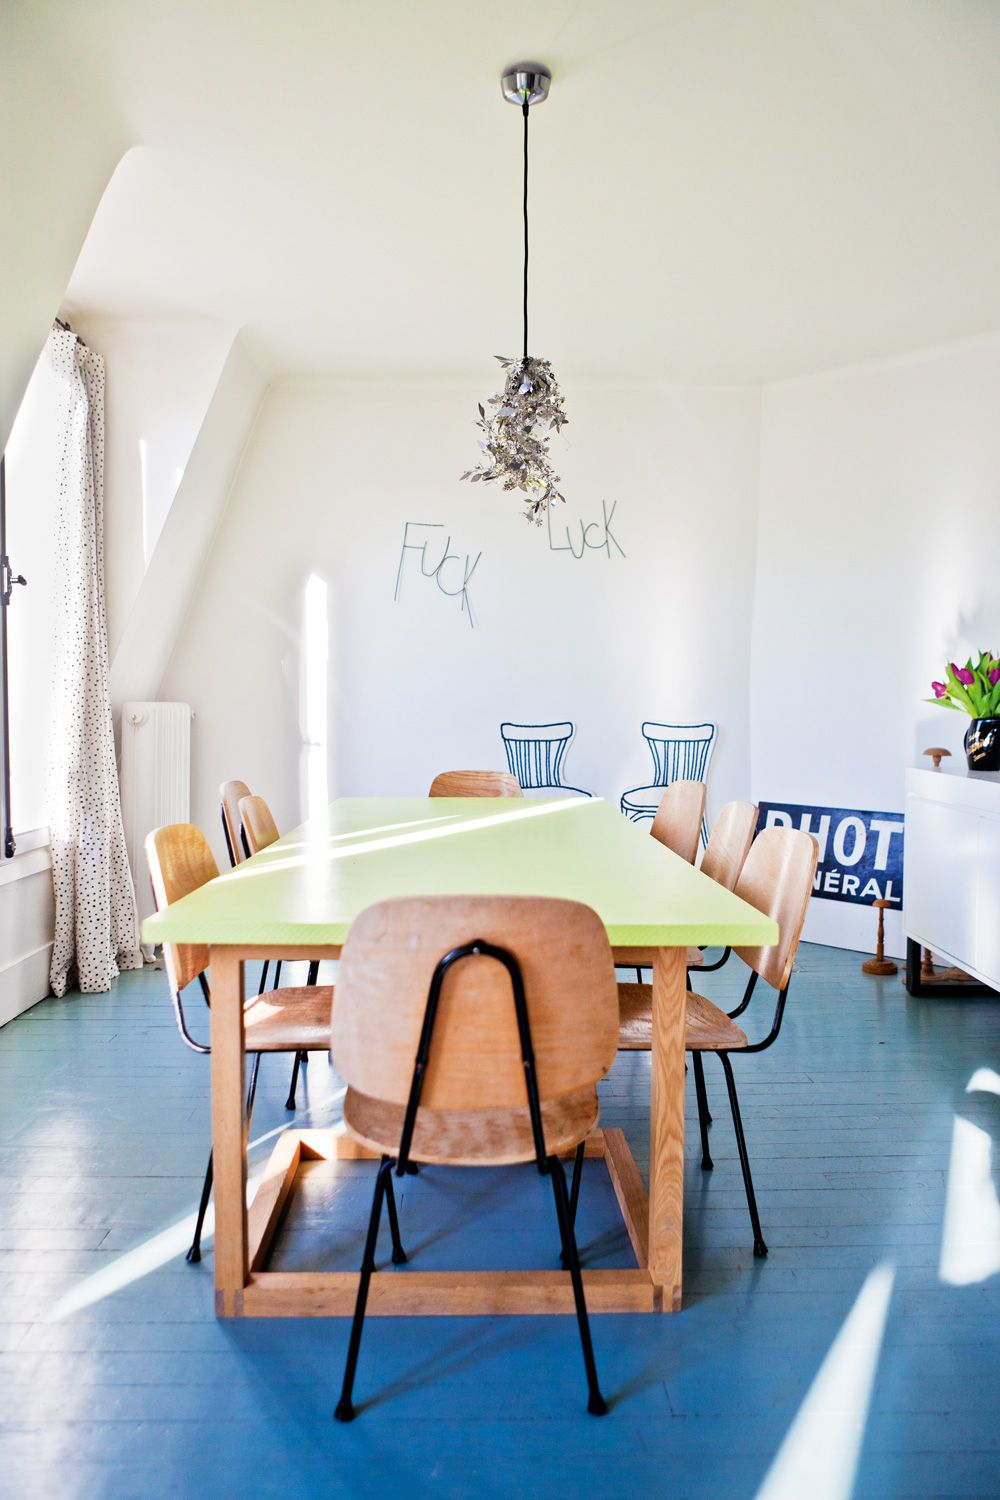 Whimsical space   Houses   Pinterest   Blue floor, Whimsical and Spaces